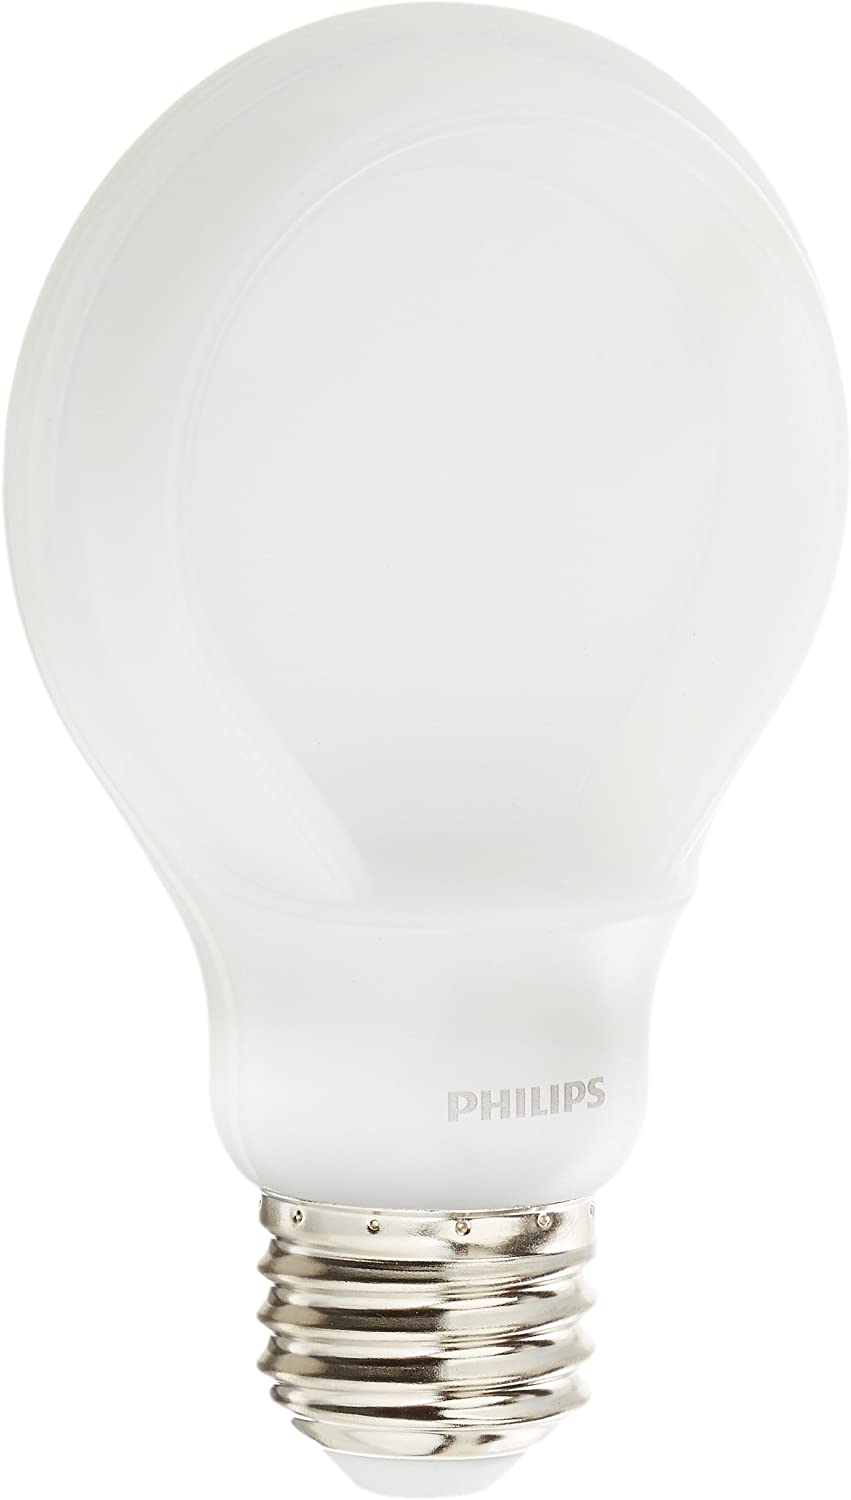 (10-Pack) Philips 433276 10.5A19/SLIM/2700 DIM 10.5-Watt SlimStyle A-Shape Dimmable LED Lamp - 60W Equivalent 717YTi8I8jLSL1500_